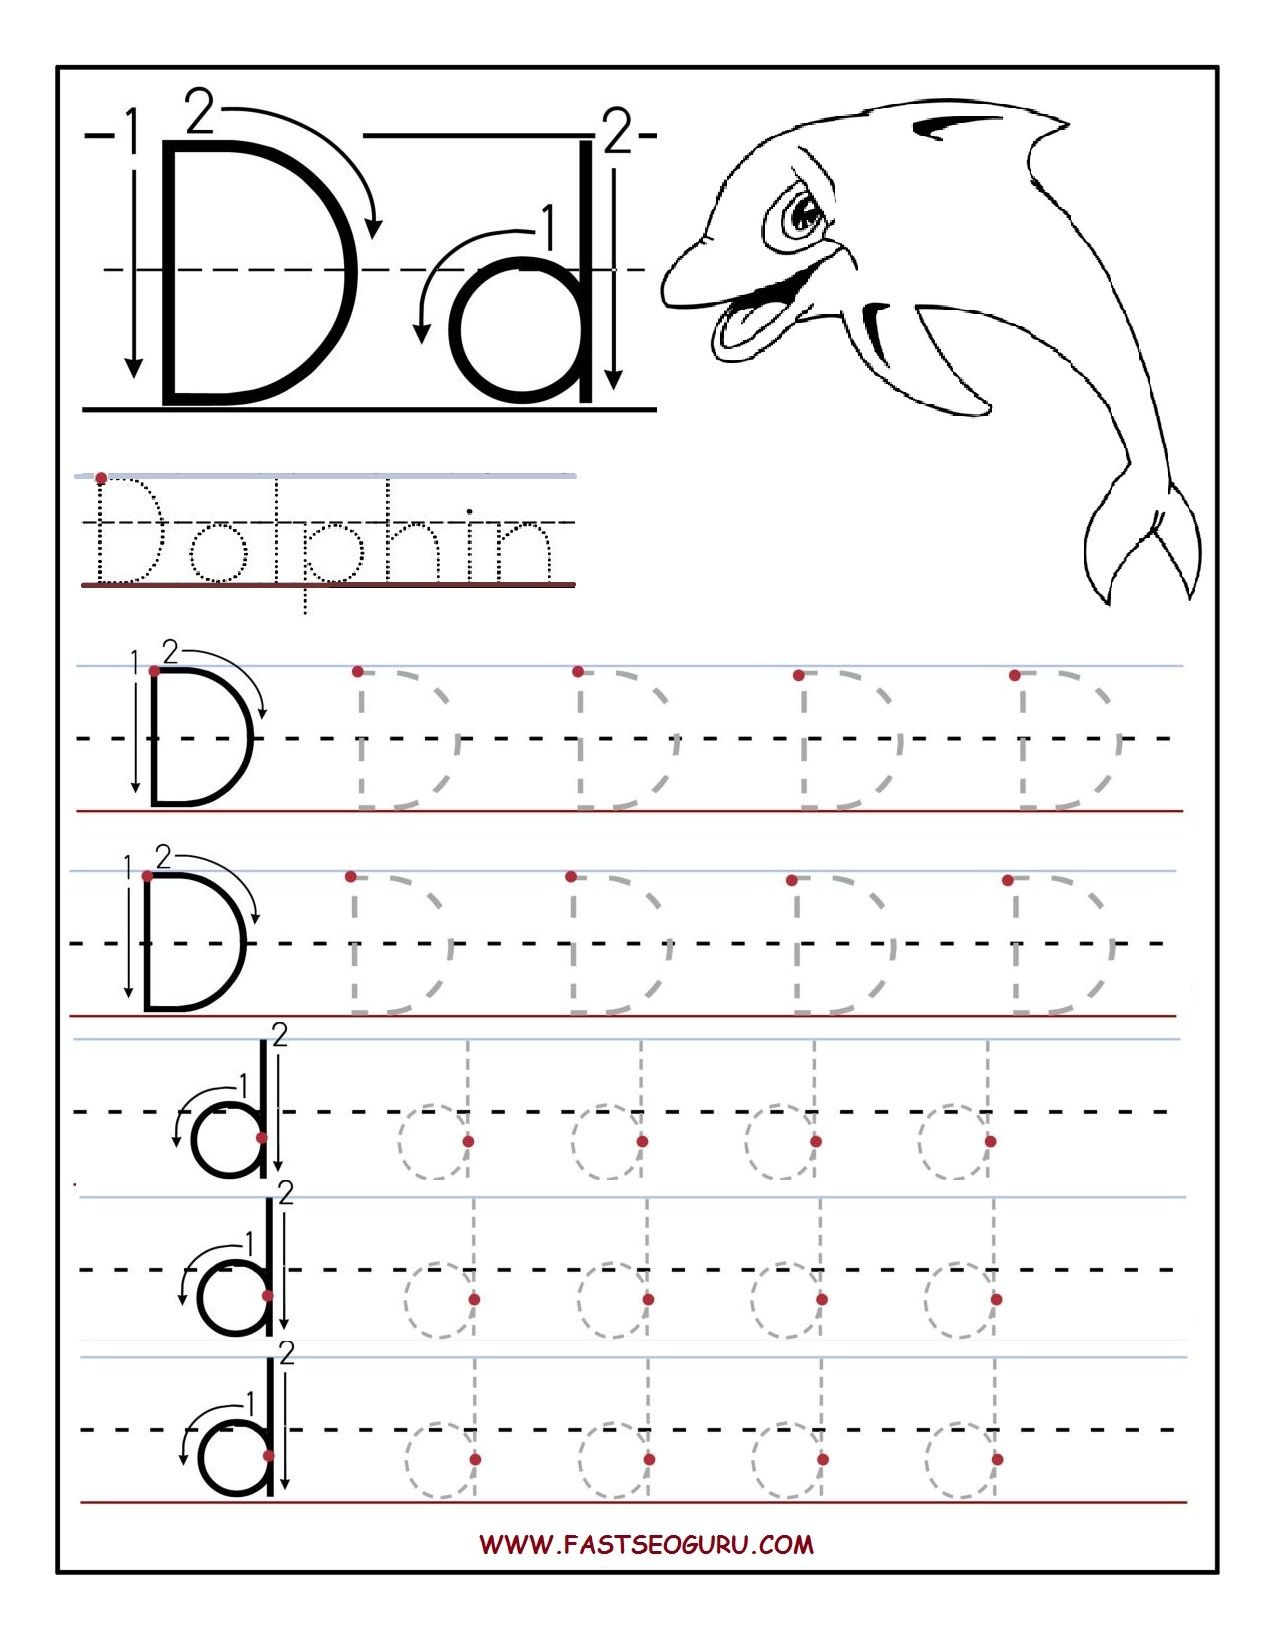 Worksheets Tracing Printable Worksheets worksheets for preschoolers printable letter d tracing preschool